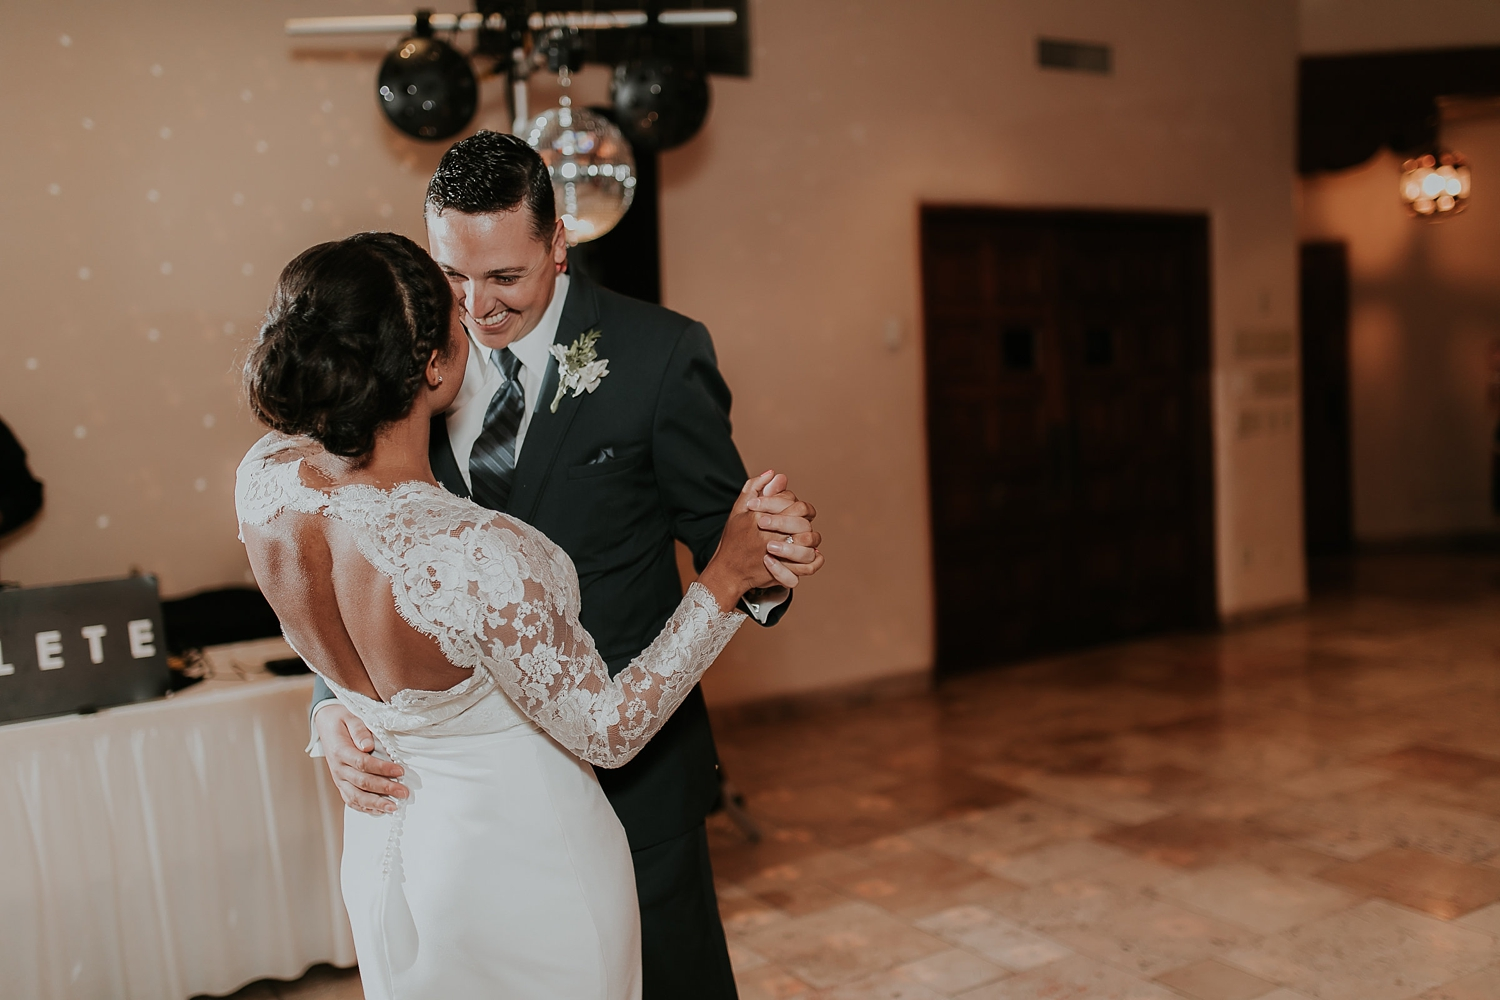 Alicia+lucia+photography+-+albuquerque+wedding+photographer+-+santa+fe+wedding+photography+-+new+mexico+wedding+photographer+-+new+mexico+engagement+-+la+fonda+new+mexico+wedding+-+la+fonda+fall+wedding_0084.jpg